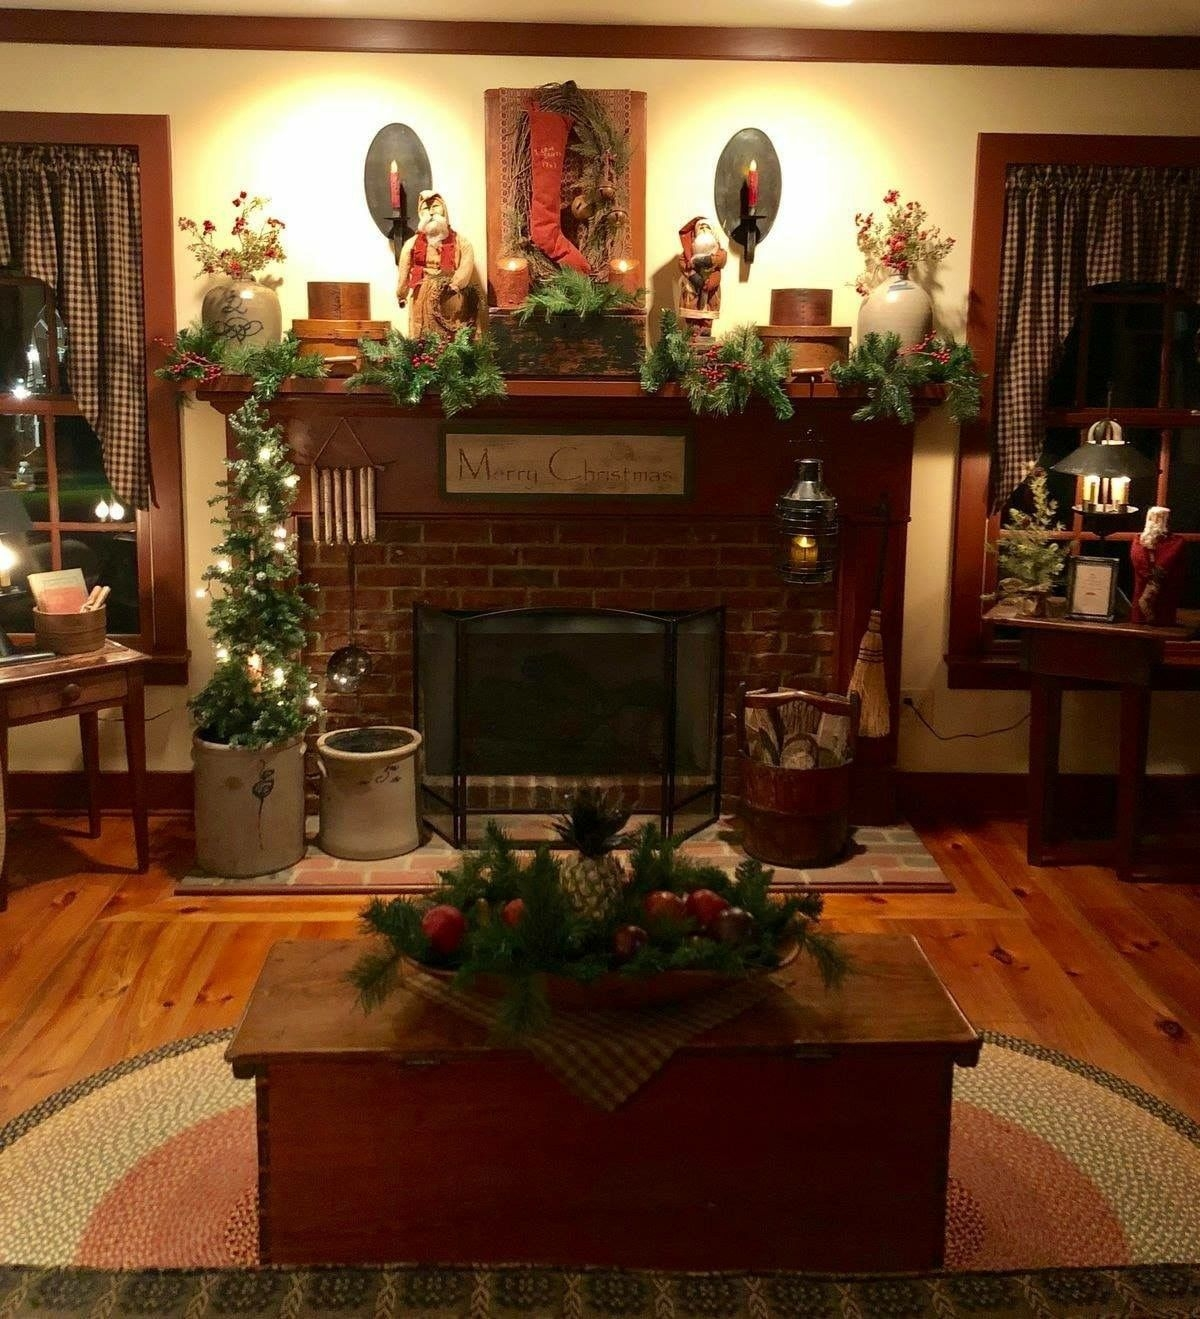 Creative Rustic Christmas Fireplace Mantel Décor Ideas 42